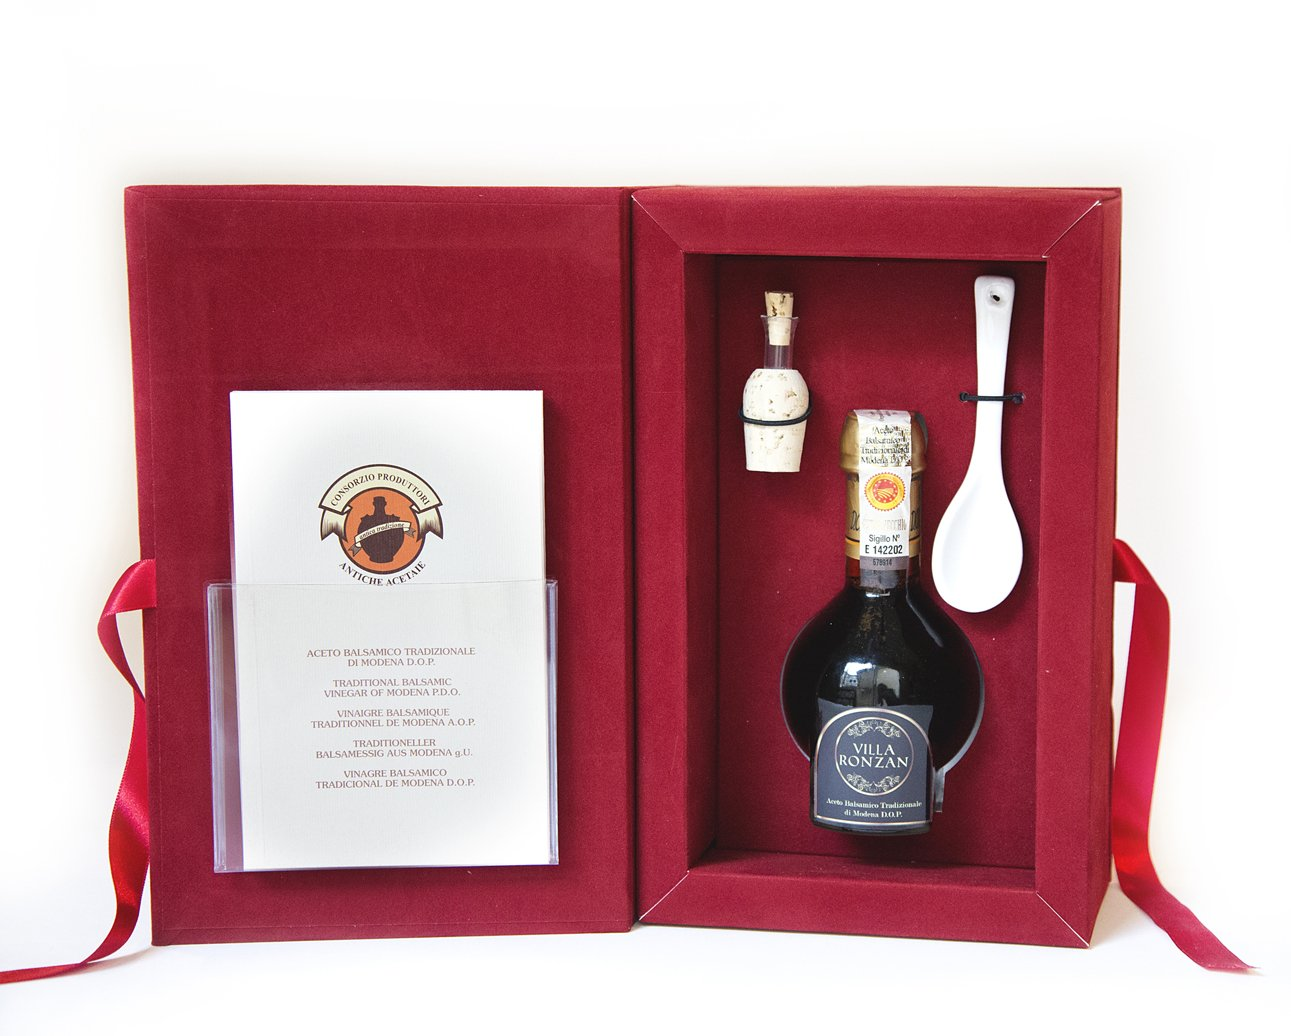 Balsamic vinegar gift set. Aceto balsamico tradizionale of Modena. Aged 25 years. DOP certified from Villa Ronzan